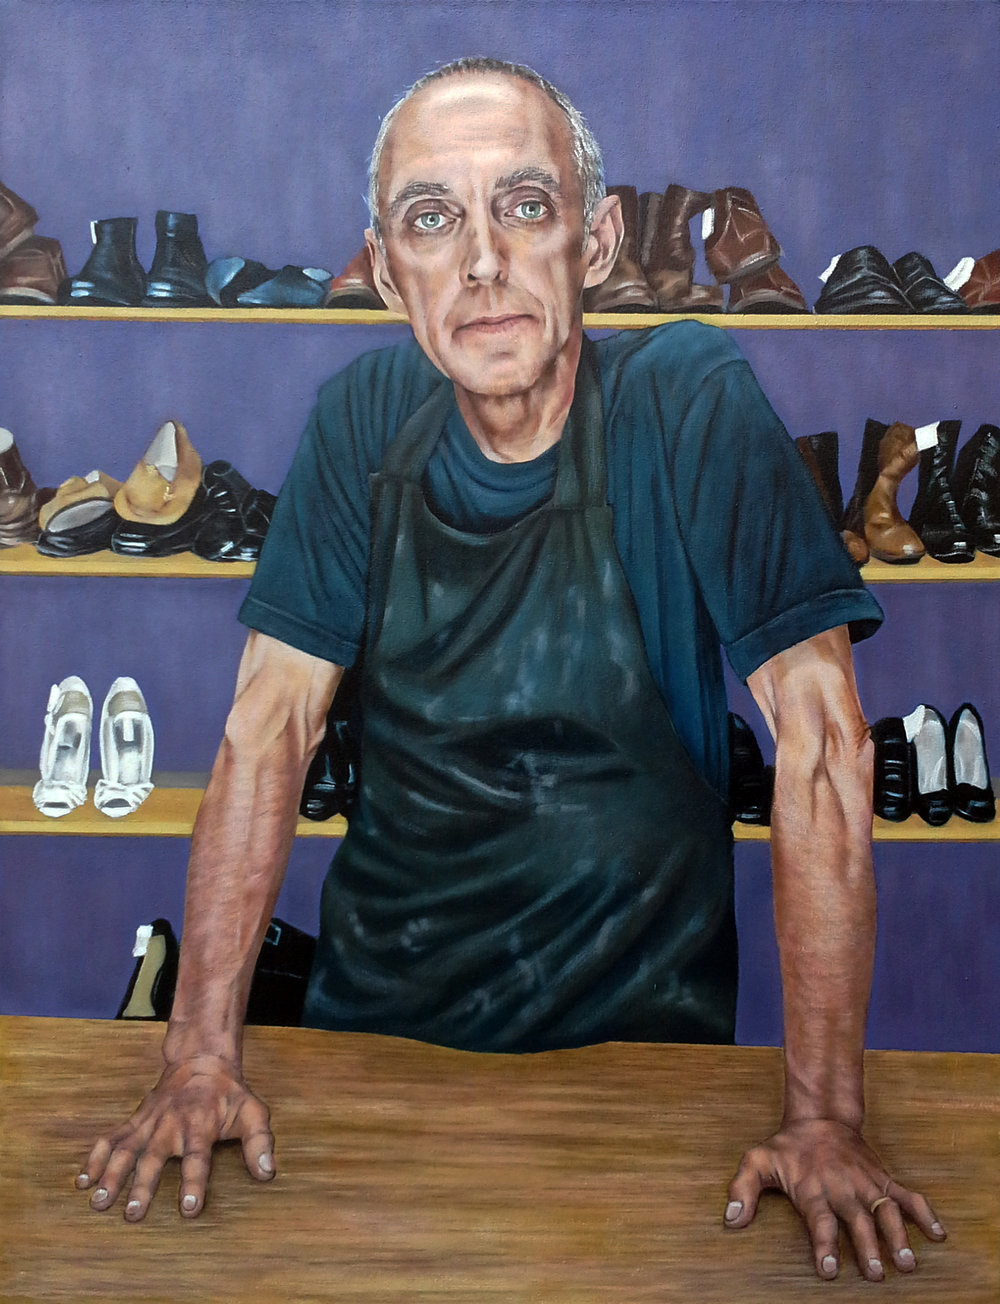 2017 SPA Exhibition The Shoemaker  80 x 104 cm (framed)  Oil on canvas  Not for sale